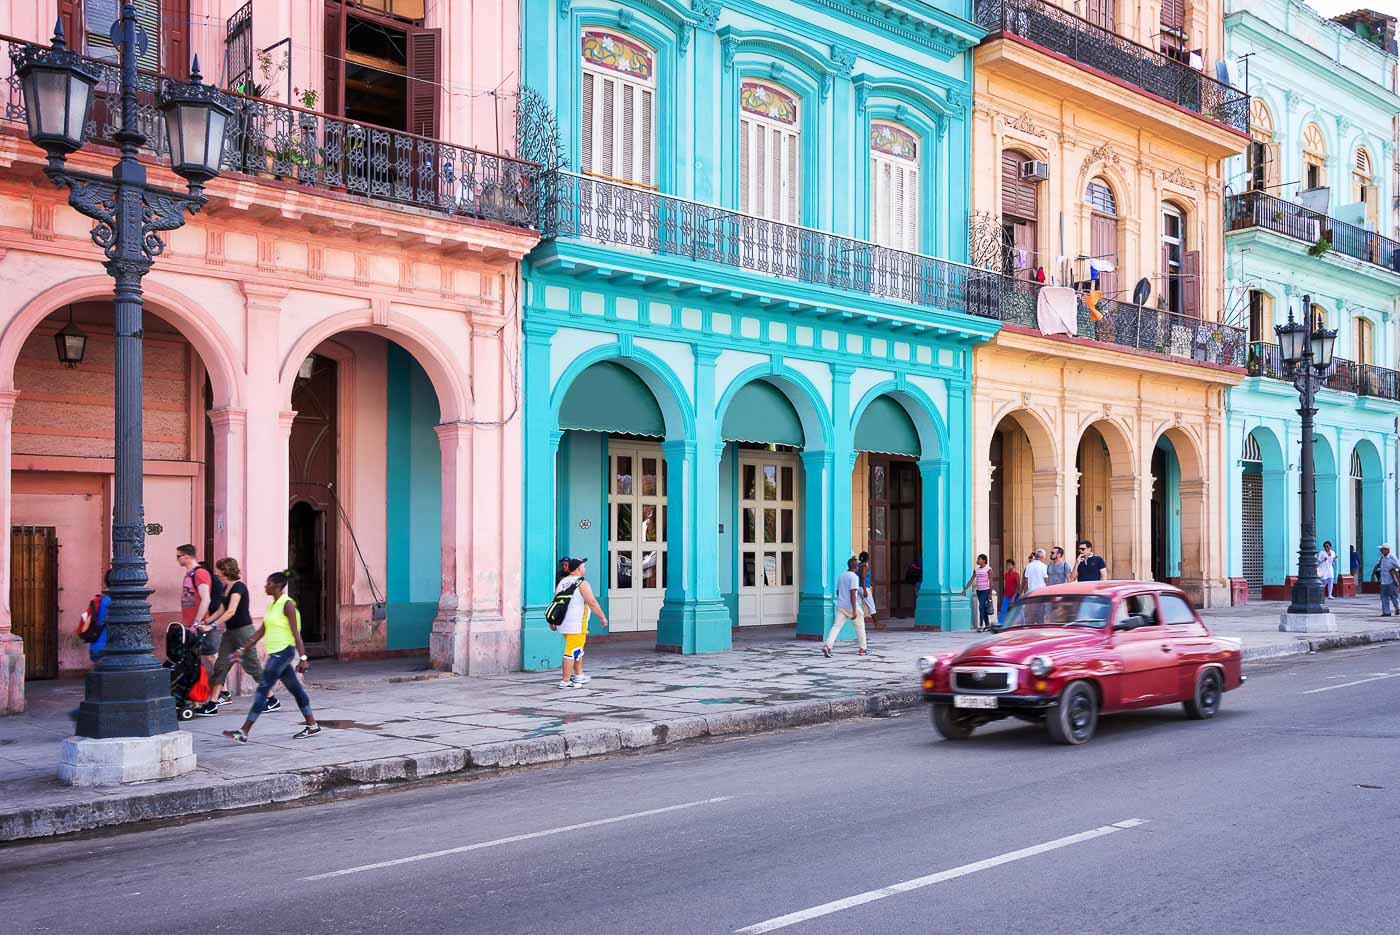 Colourful Cities by Zayah World - Havana, Cuba